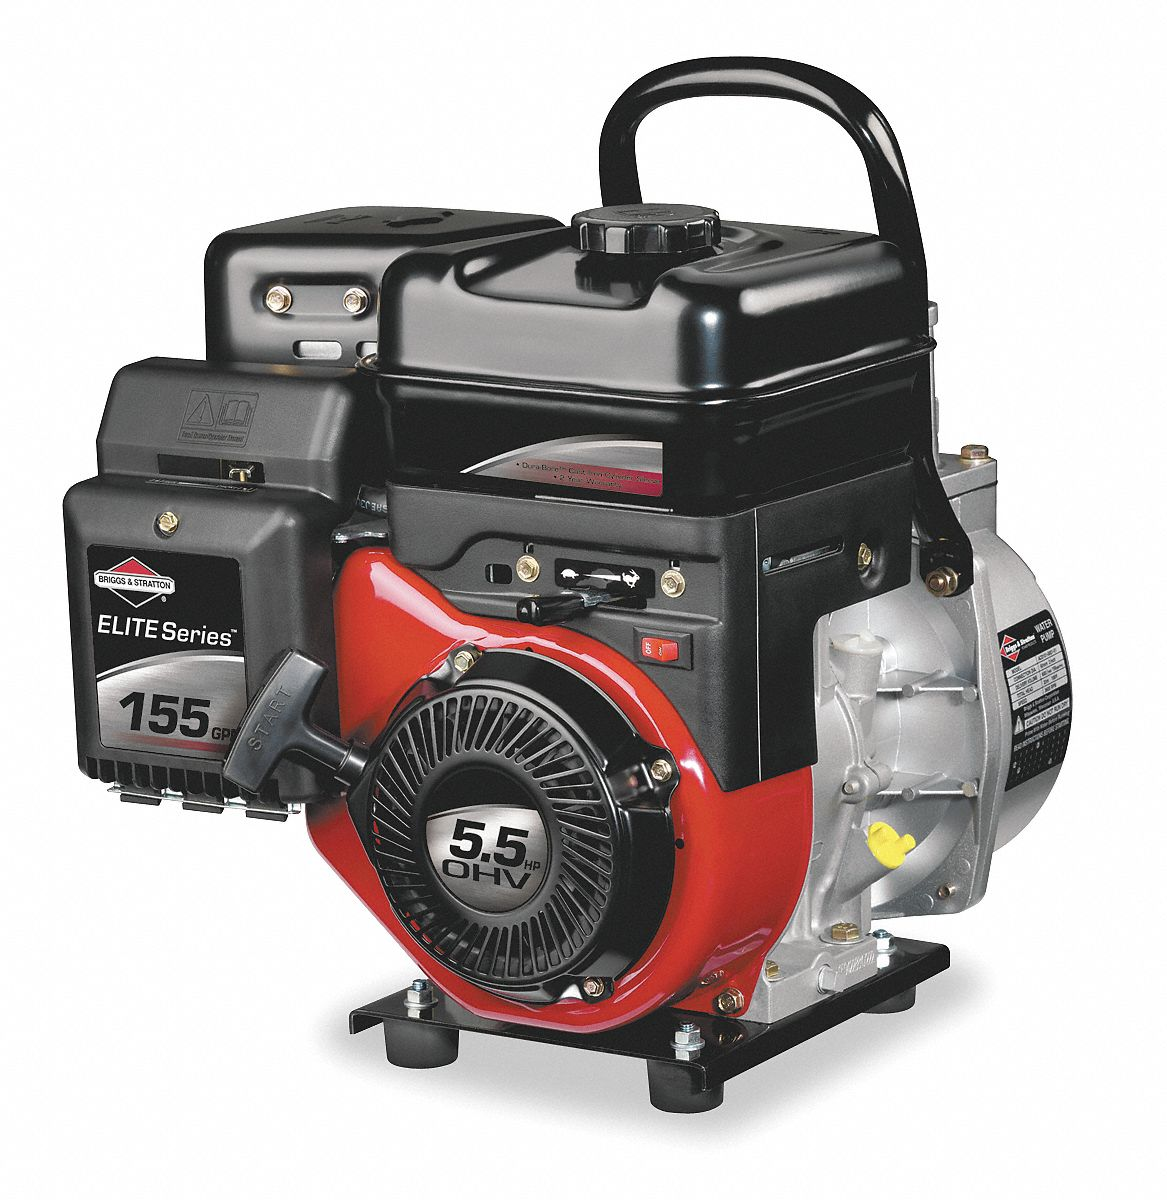 Briggs Stratton 55 Hp Rubber Engine Driven Centrifugal Pump Just Bought A Power Washer With And 5kb61 73001 Grainger